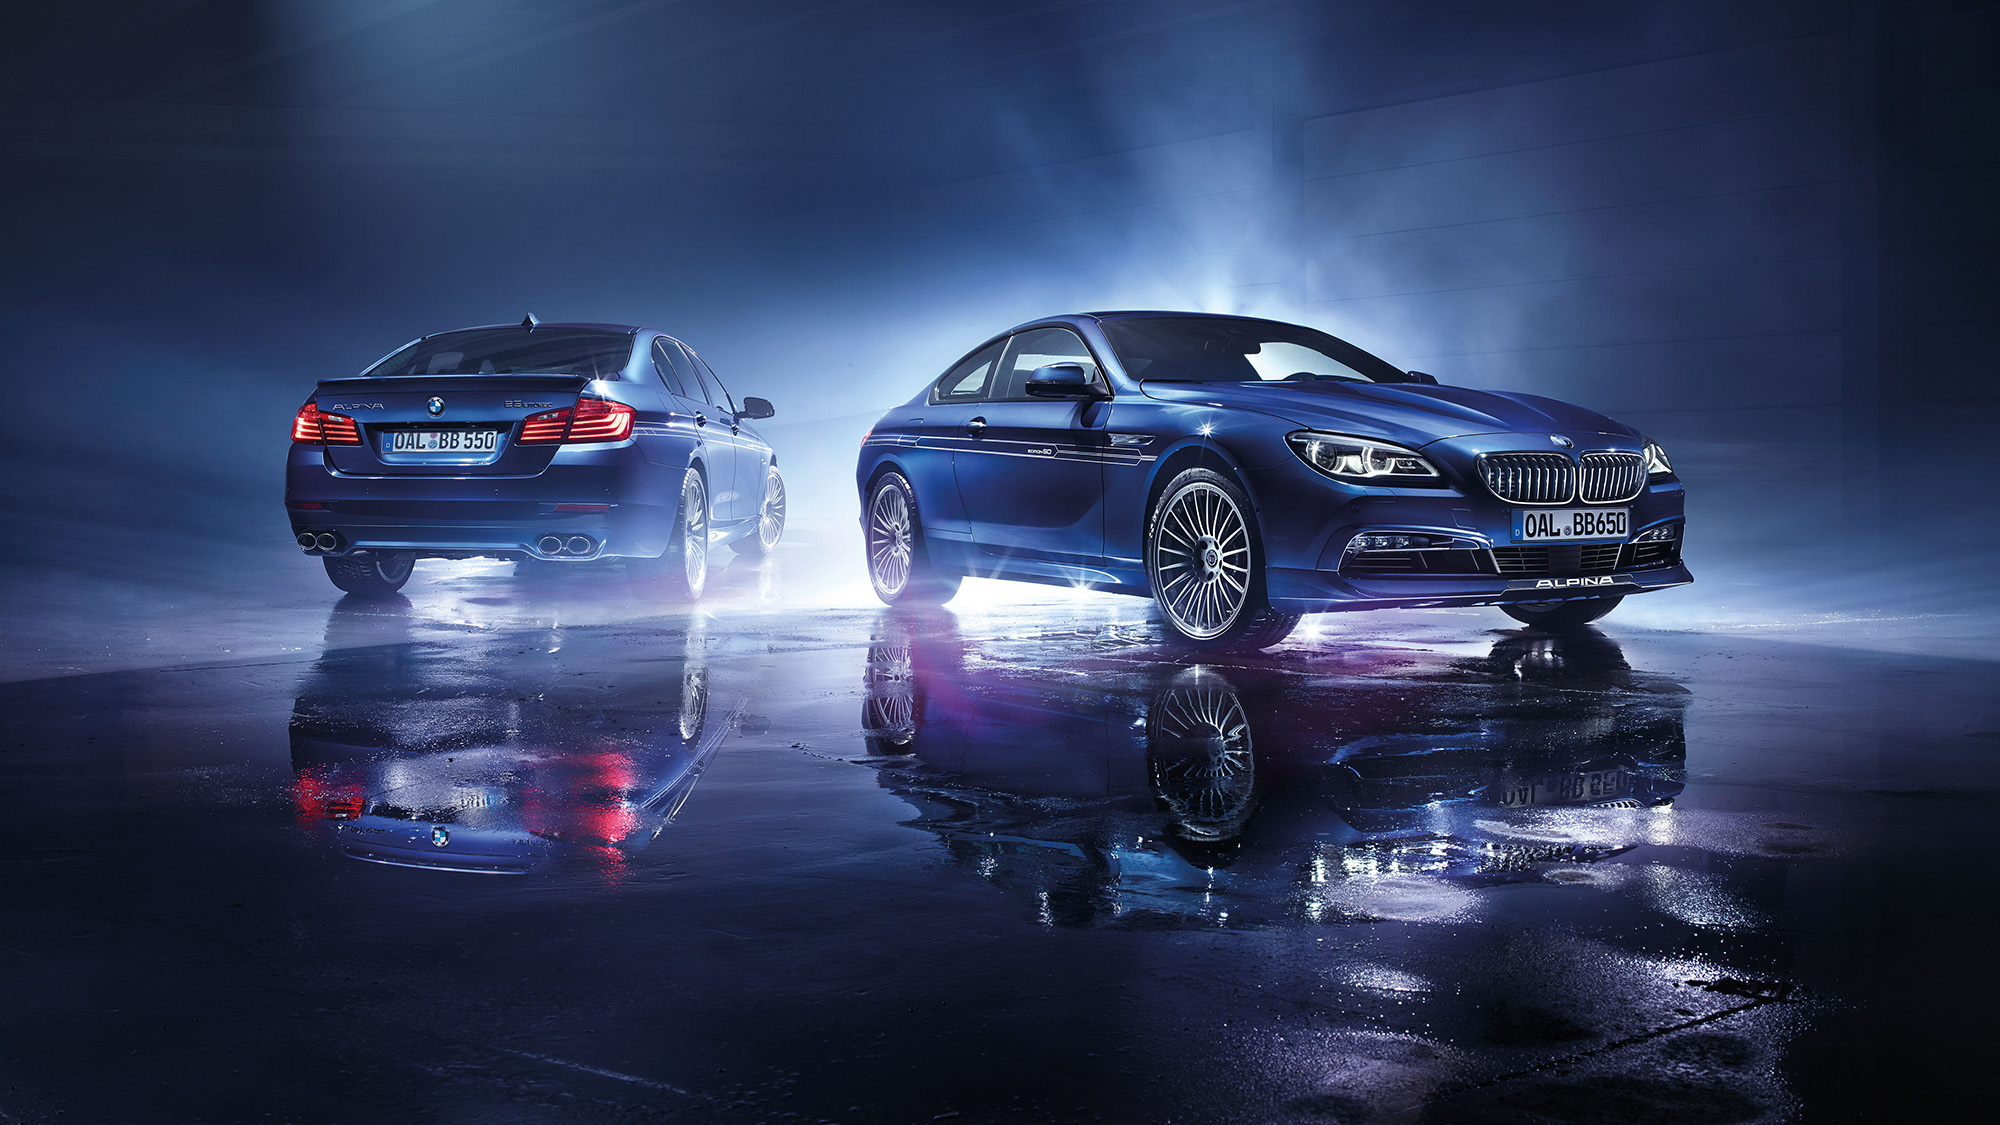 2015 BMW Alpina B5 and B6 Bi-Turbo Edition 50